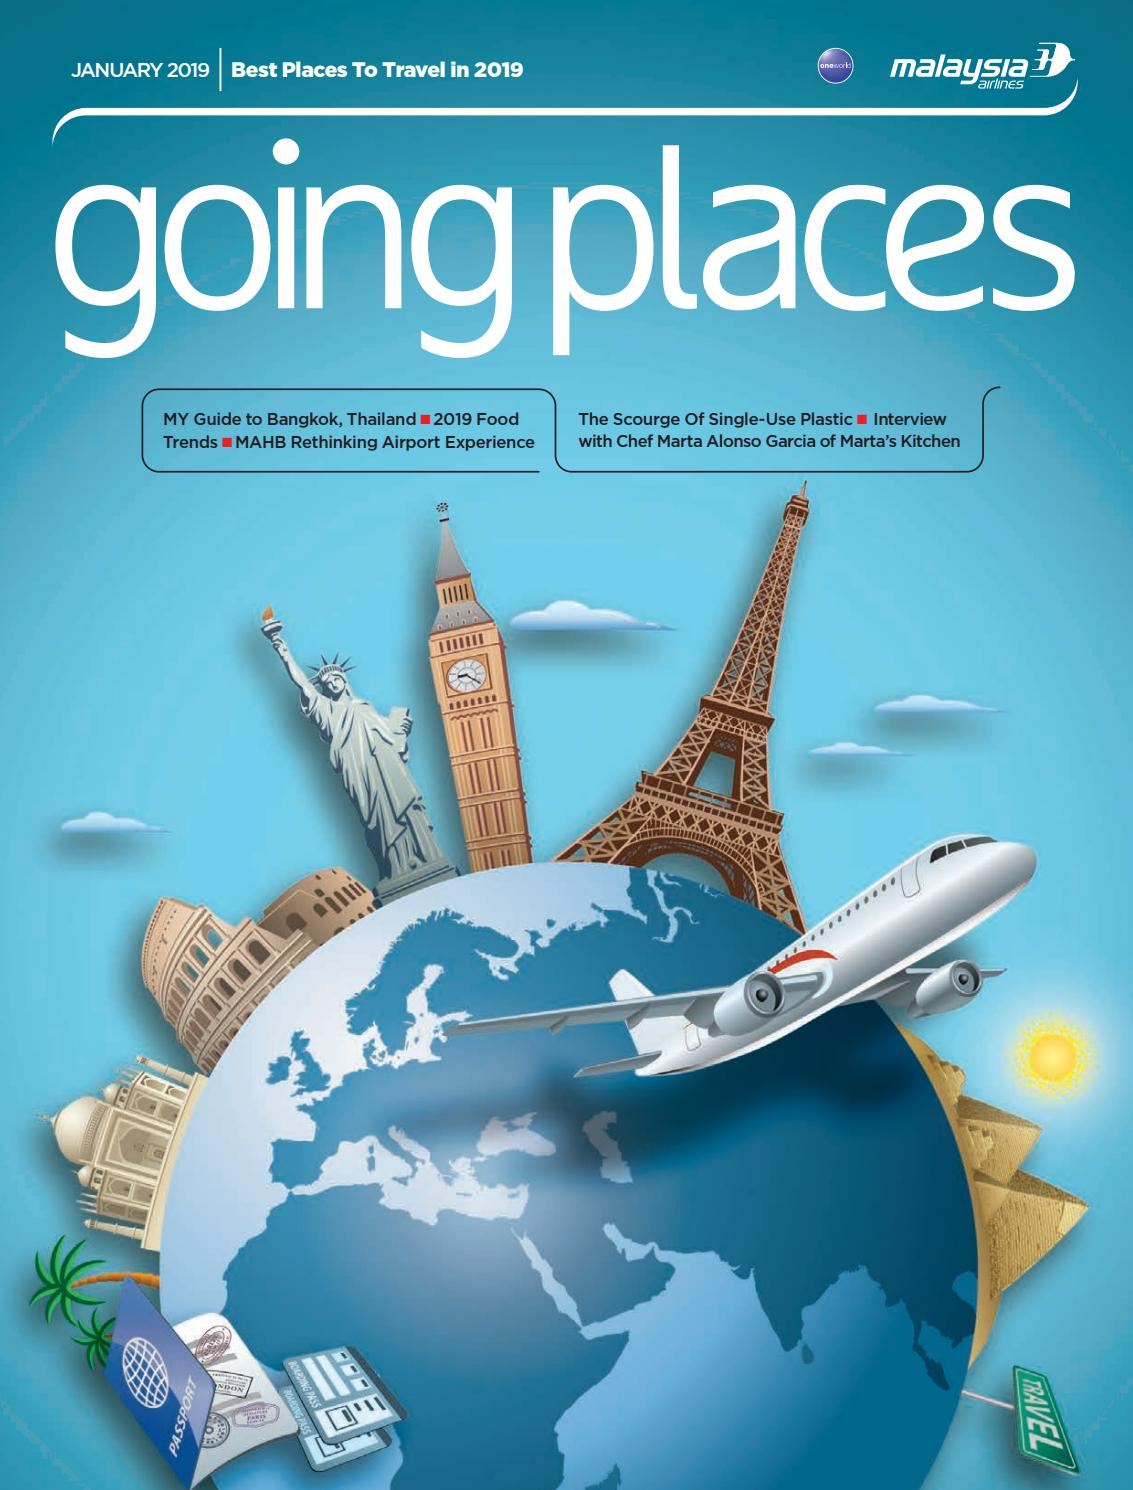 Going Places January 2019 by Spafax Malaysia - issuu